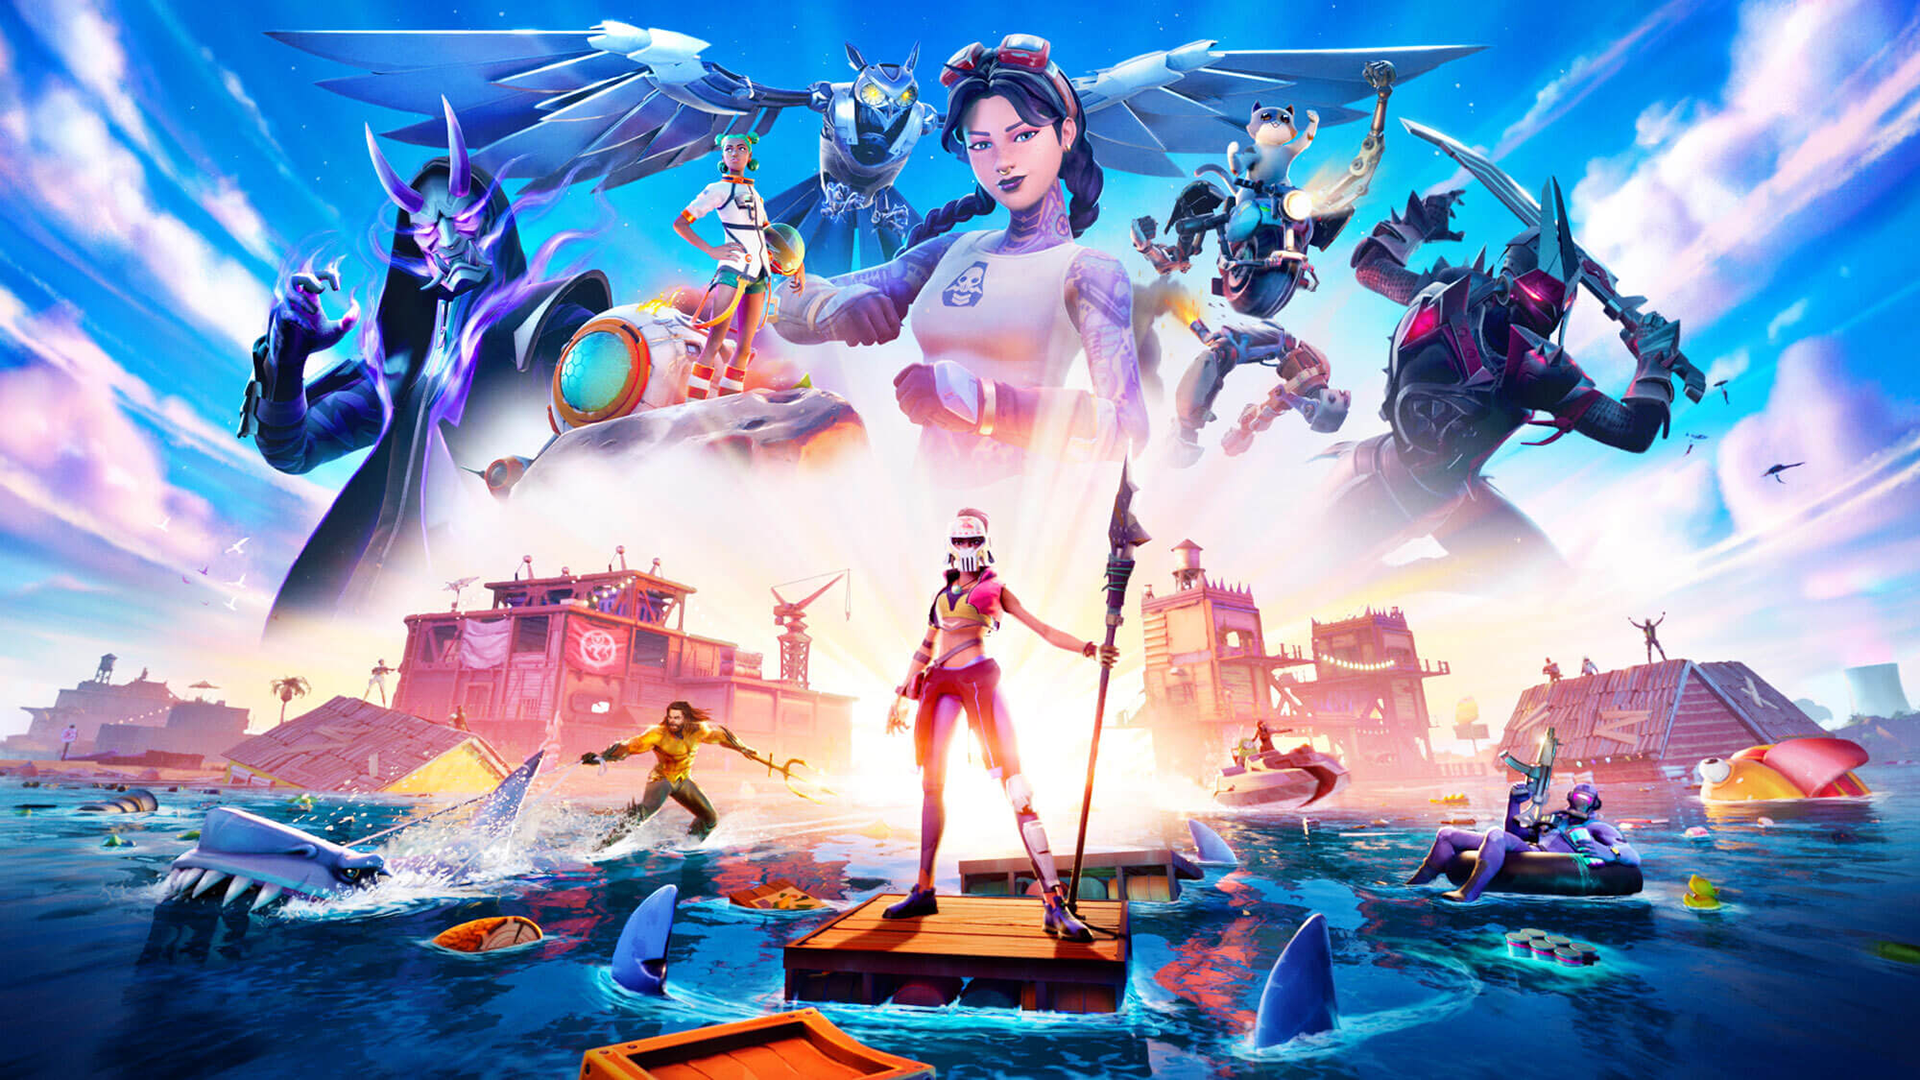 Fortnite Map Battle Pass Mythic Weapons Aquaman Skin More To Know About Chapter 2 Season 3 Sporting News